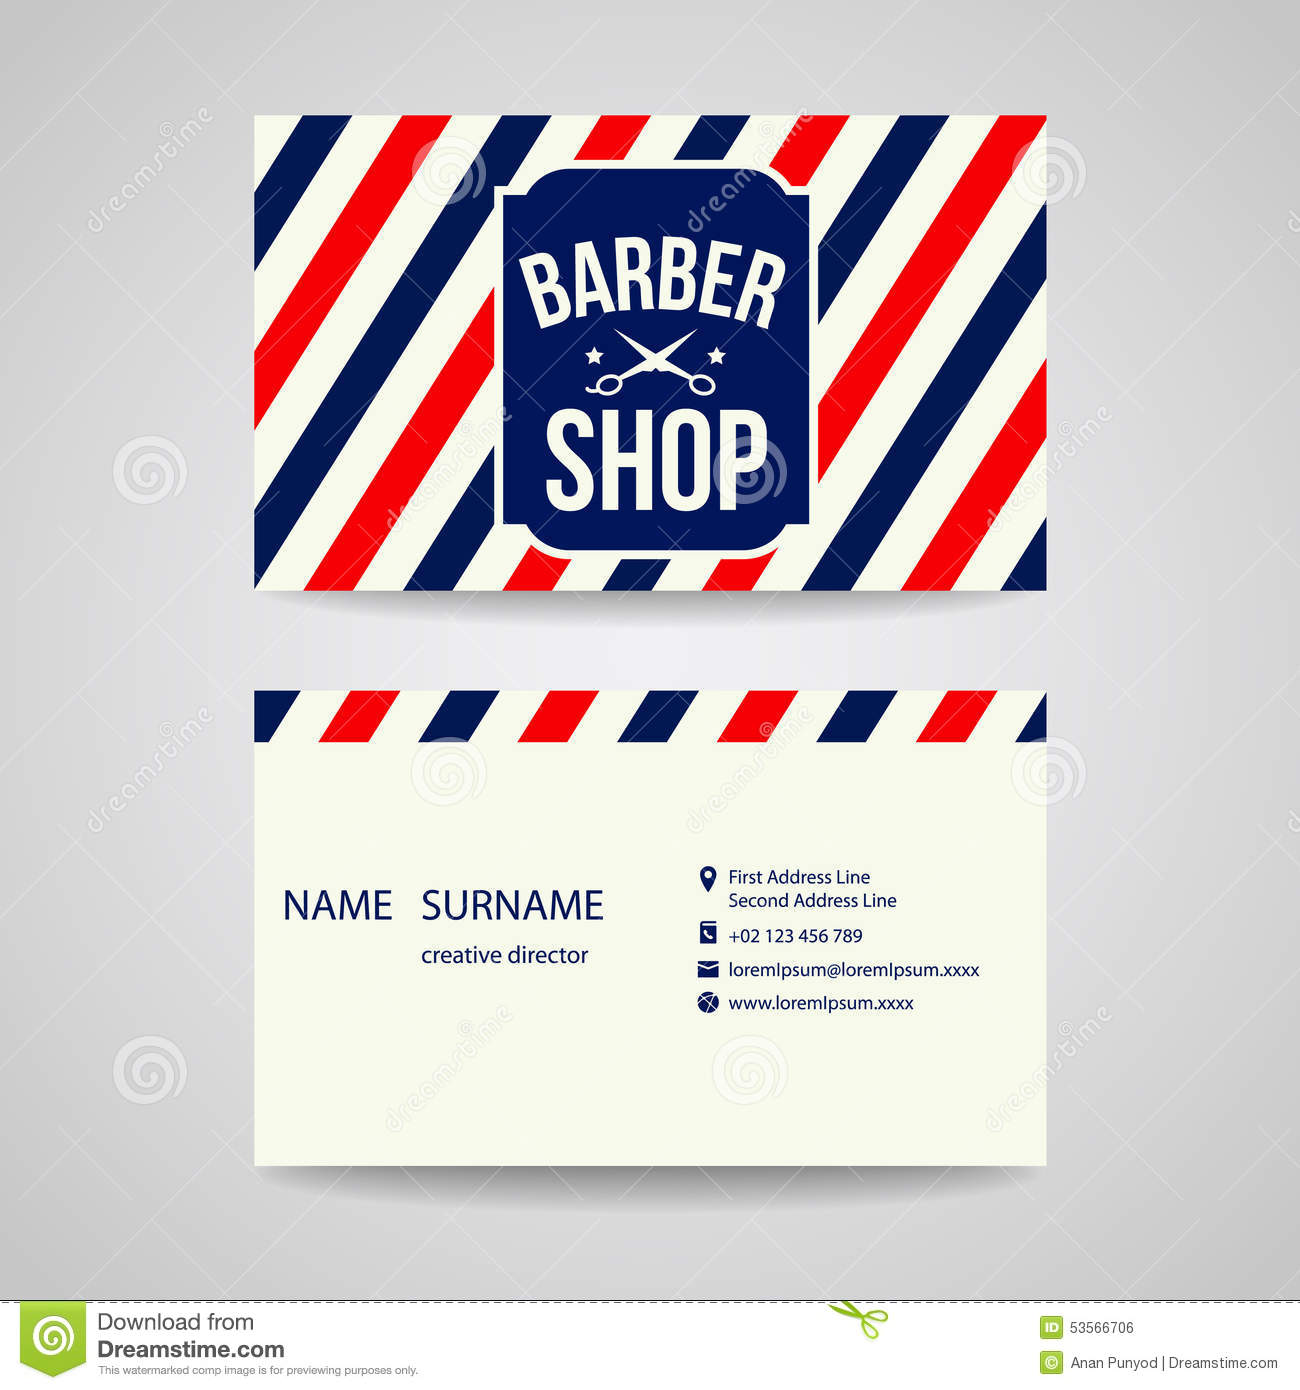 Business card template design for barber shop stock vector business card template design for barber shop fbccfo Choice Image